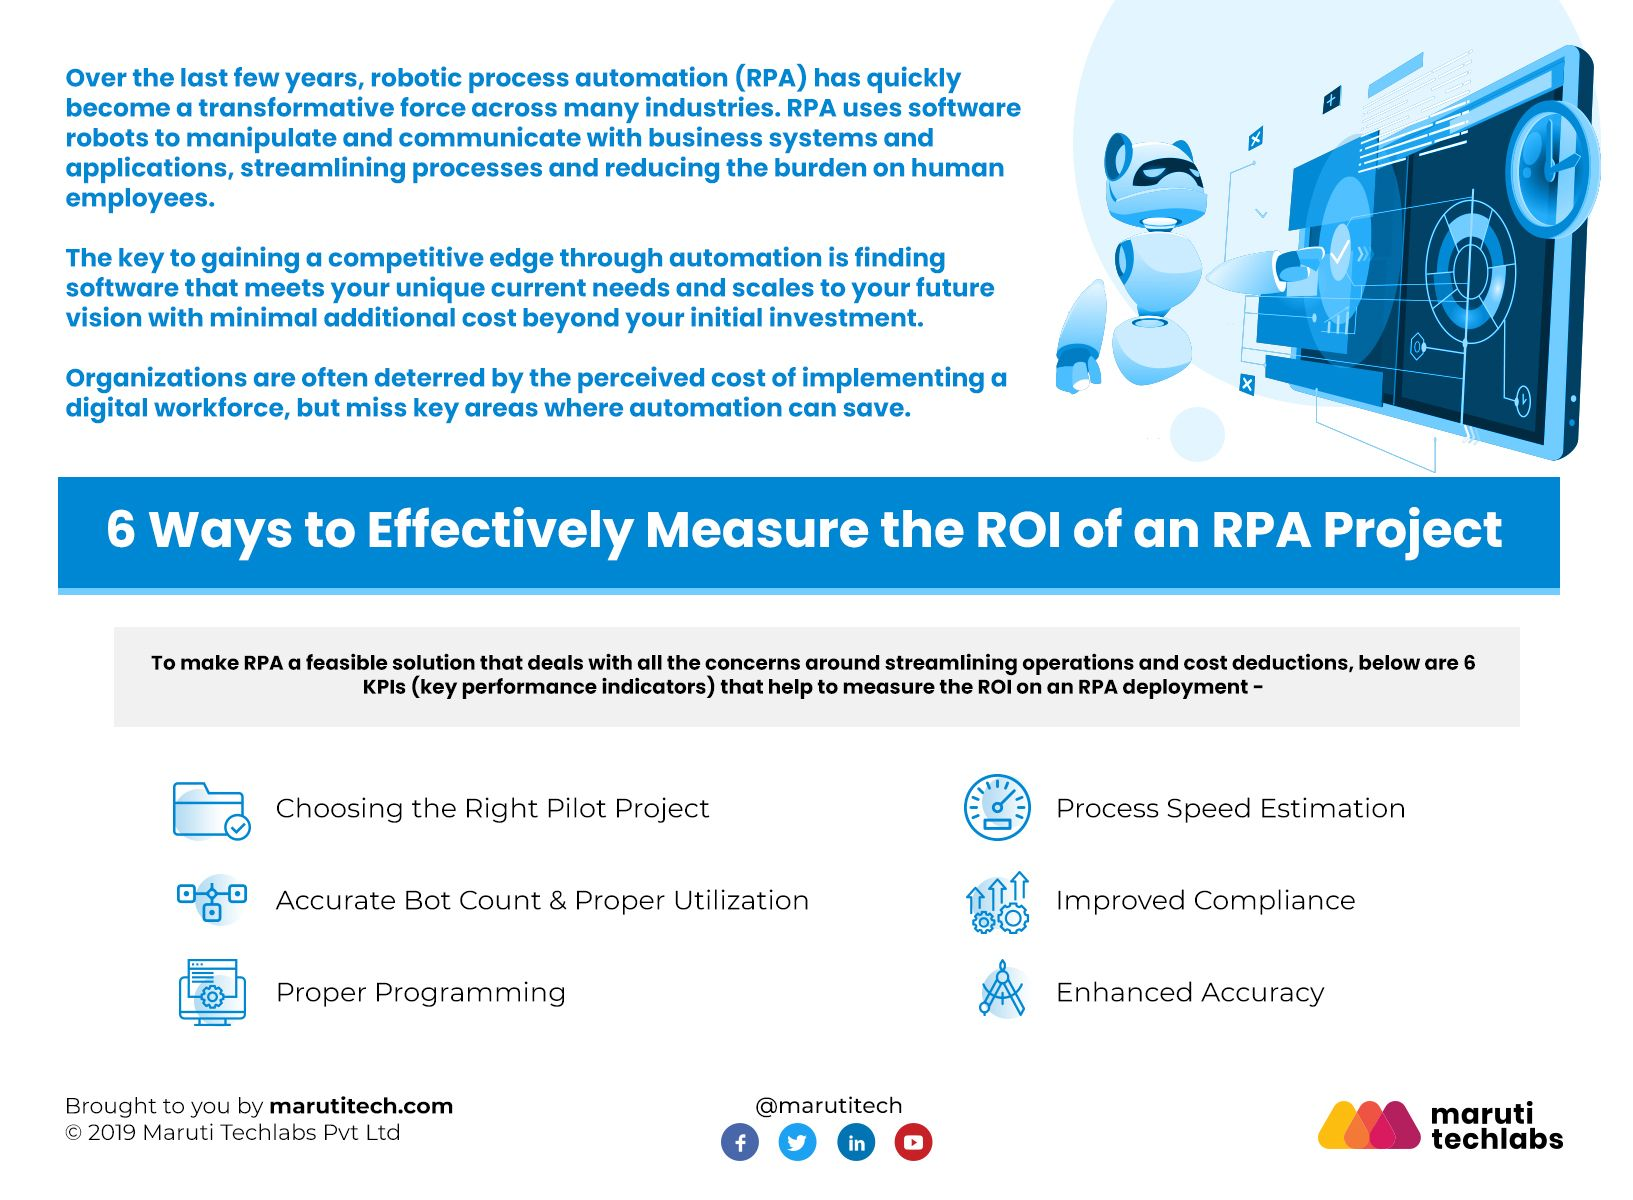 6 Ways to Effectively Measure the ROI of RPA in 2020